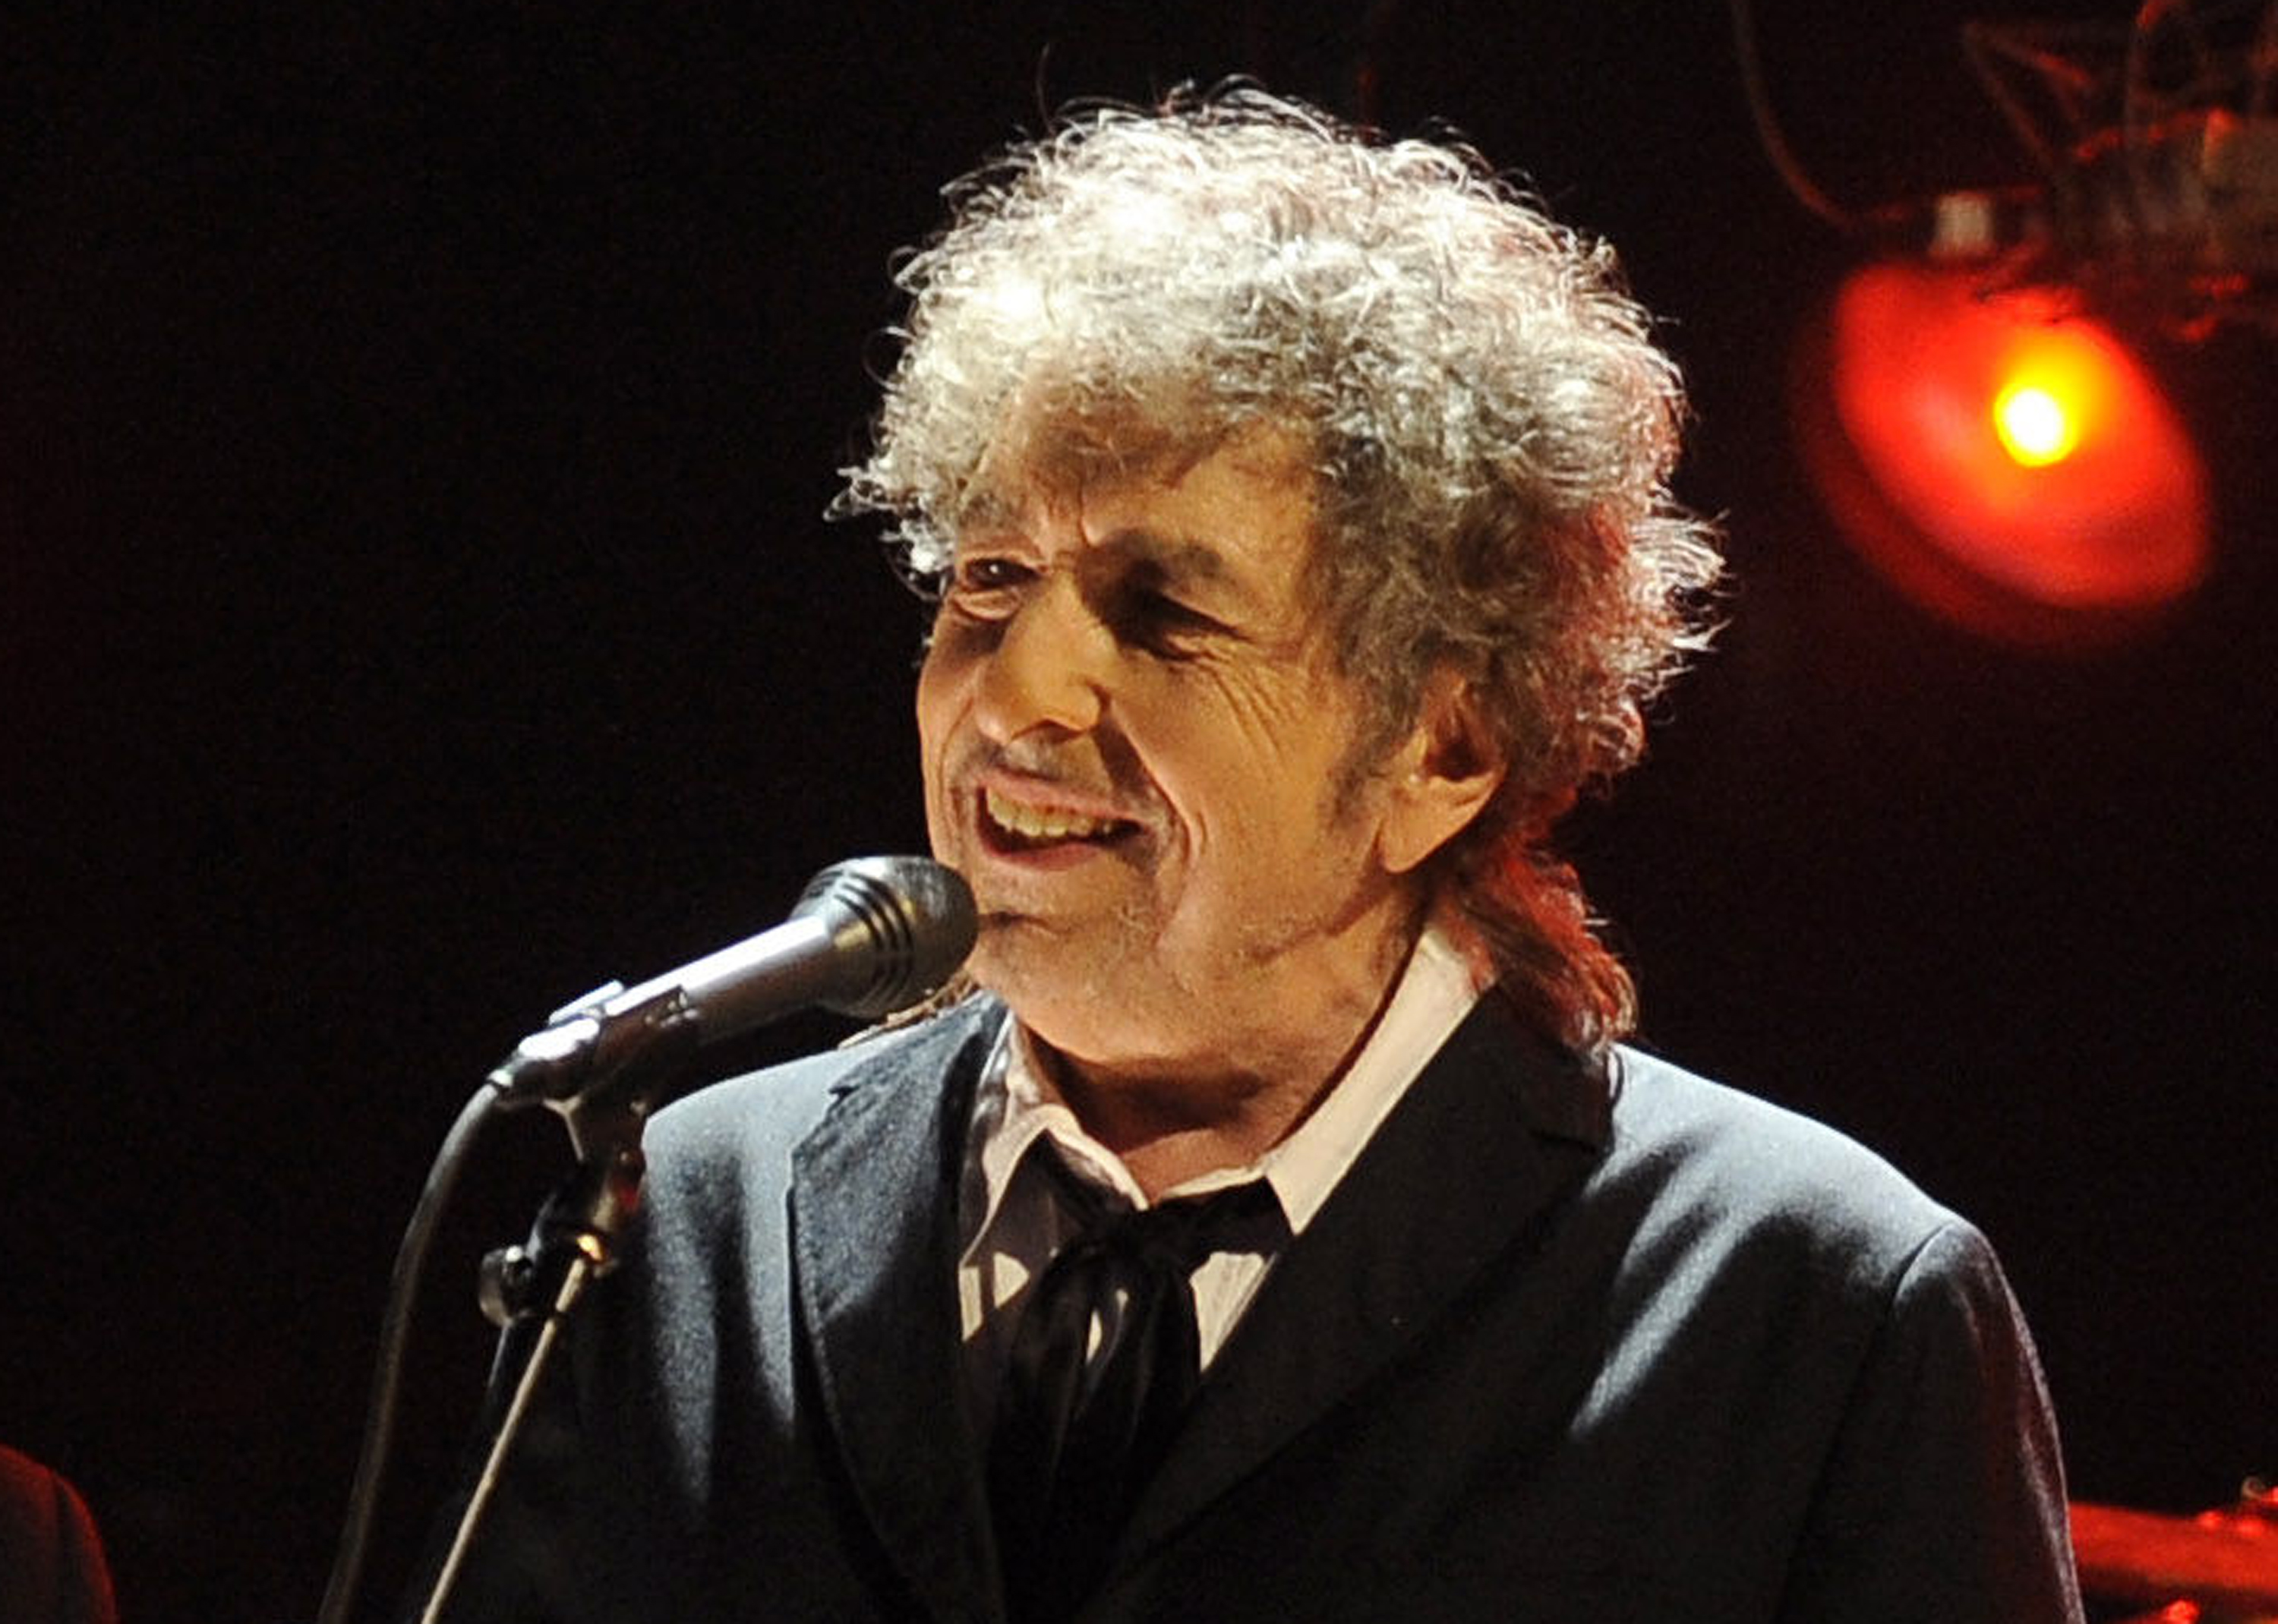 FILE - In this Jan. 12, 2012 file photo, Bob Dylan performs in Los Angeles. Fifty years into his career as a recording artist and a week away from release of an extraordinary new CD, Dylan spent his Tuesday evening where he seems to feel most comfortable — on a stage. (AP Photo/Chris Pizzello, File)